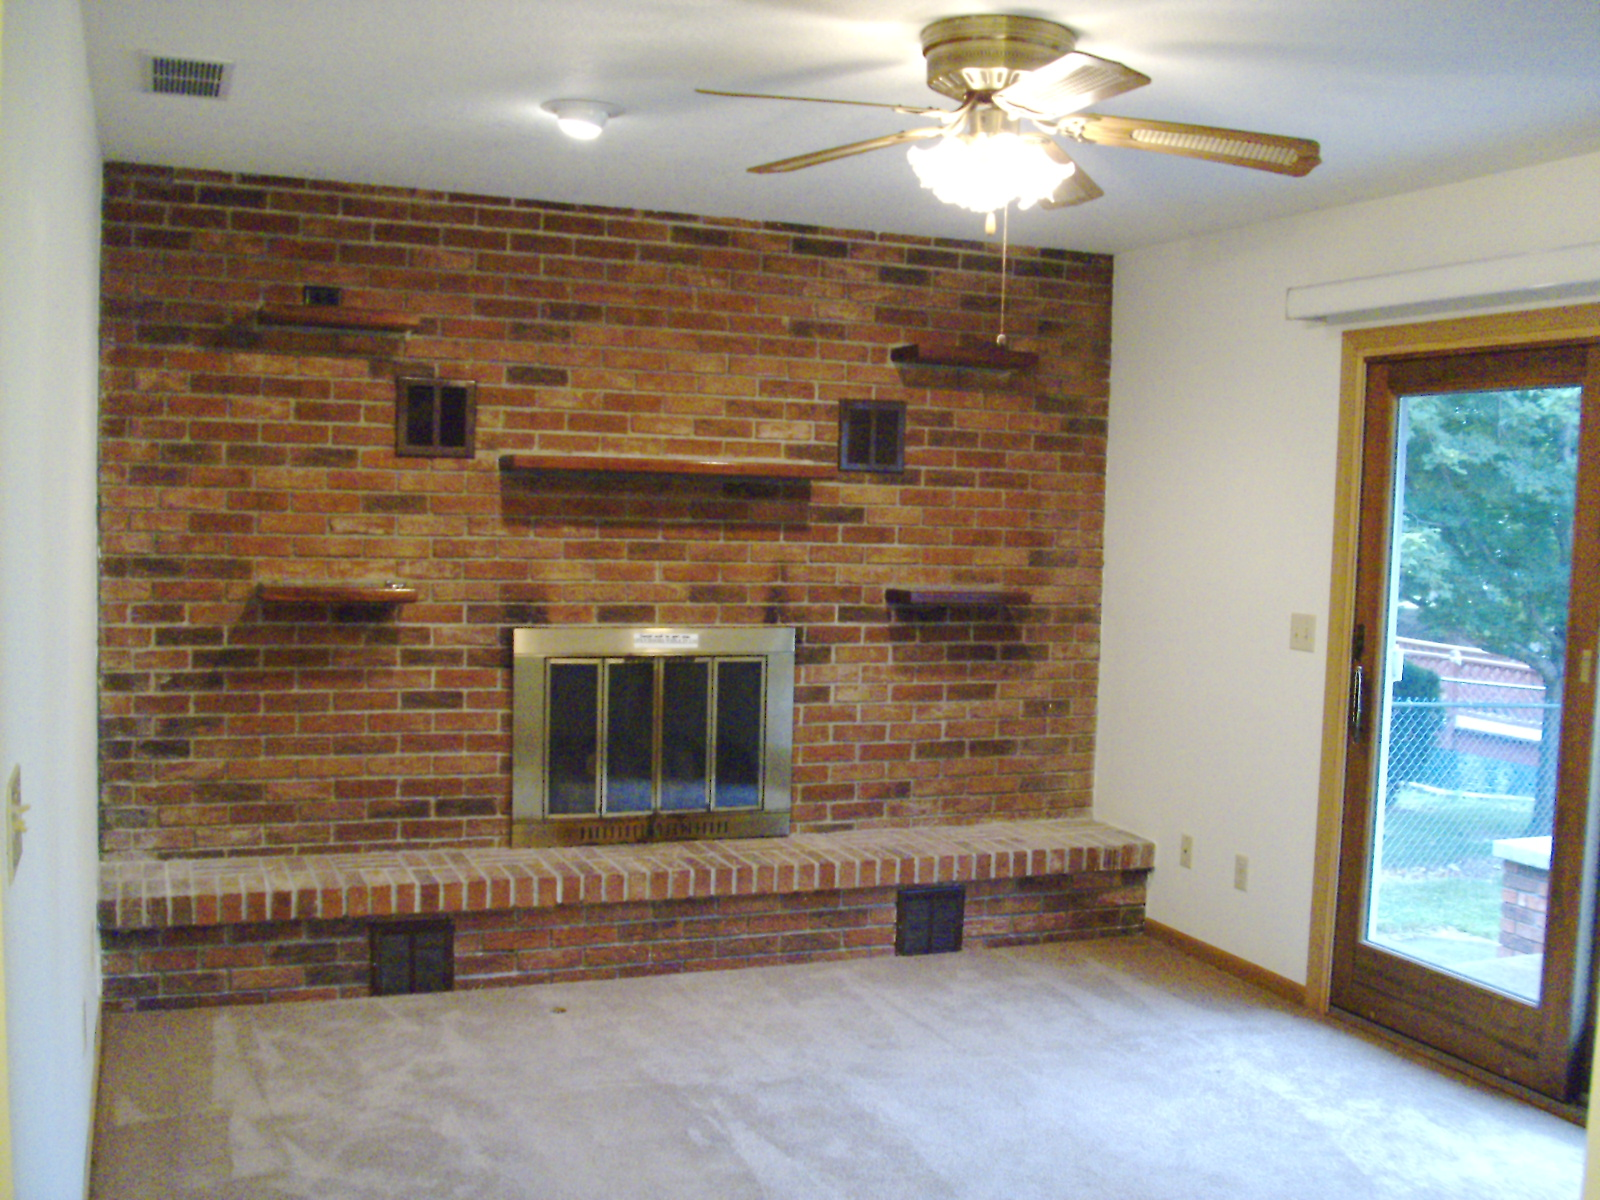 1741 fireplace in LR.JPG